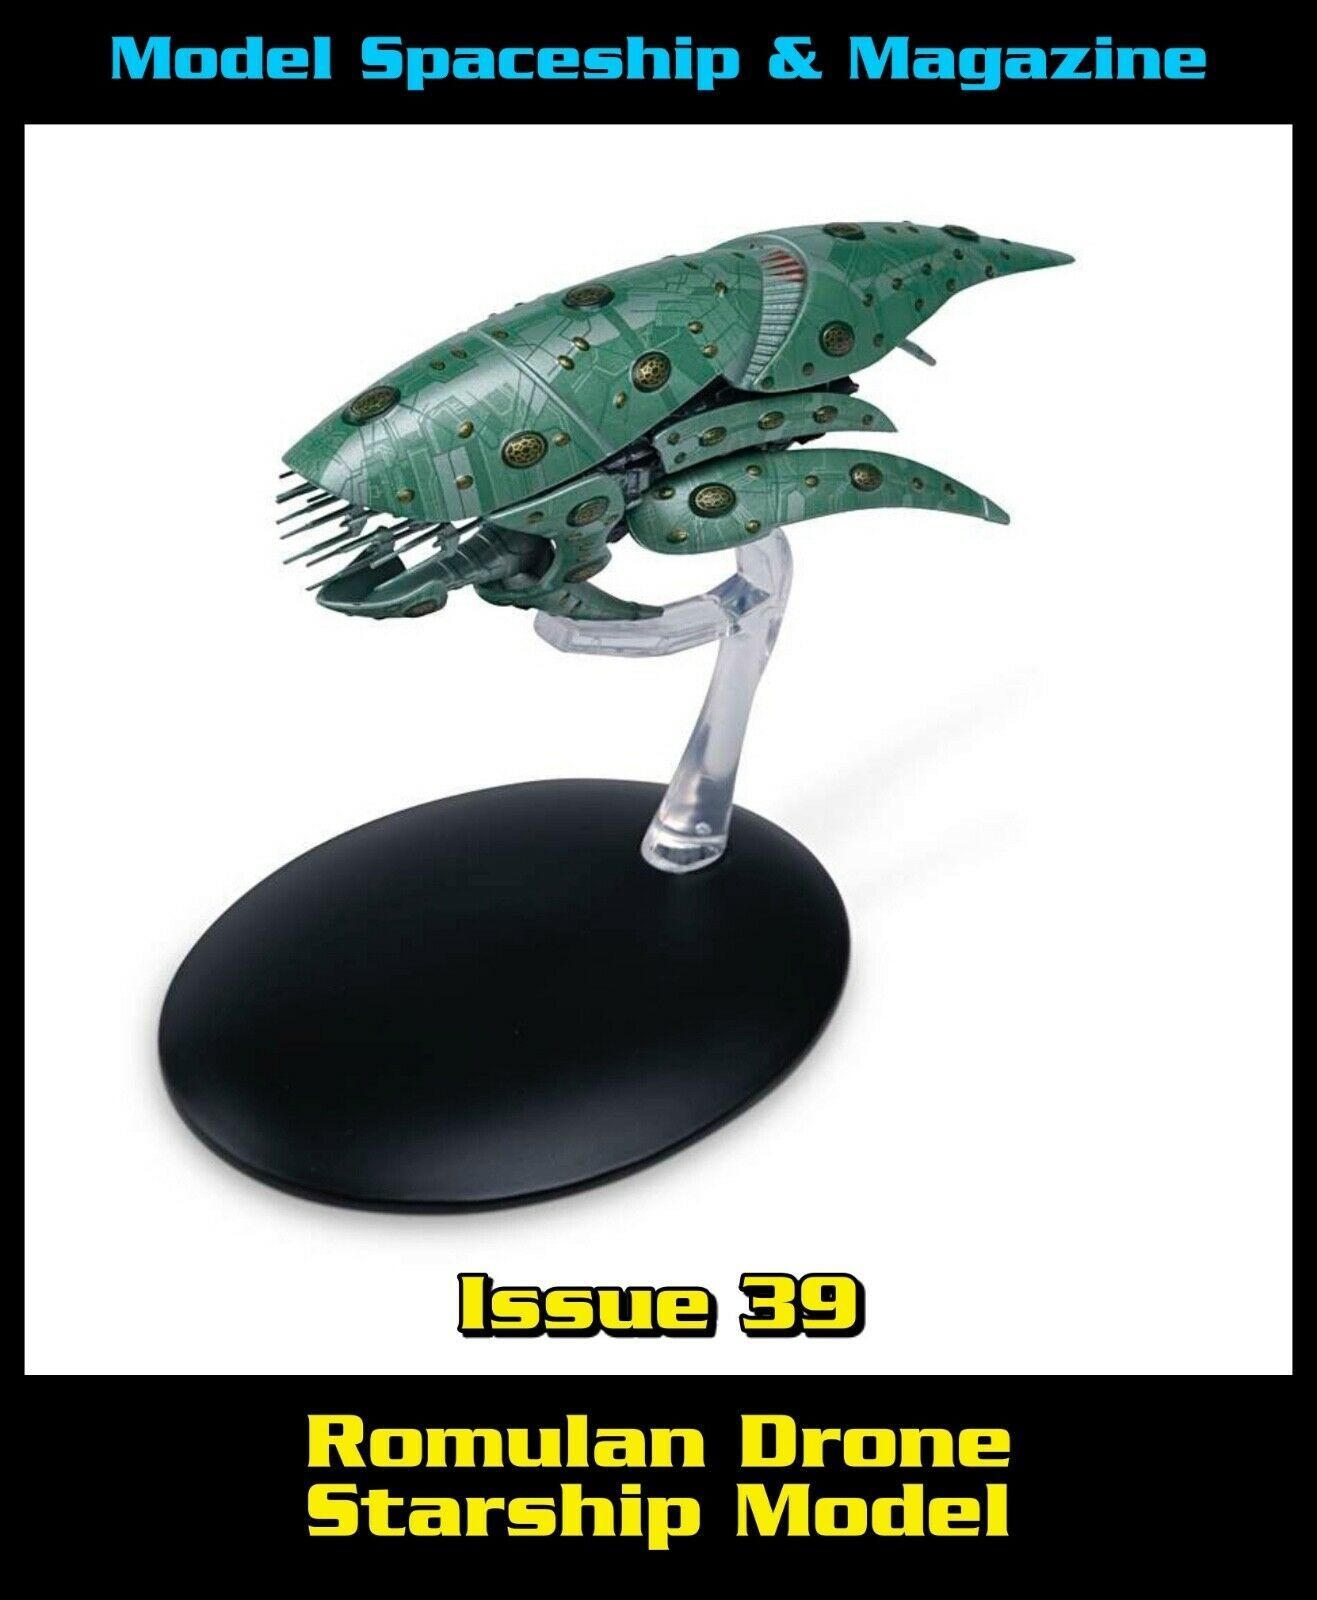 Issue 39 Romulan Drone